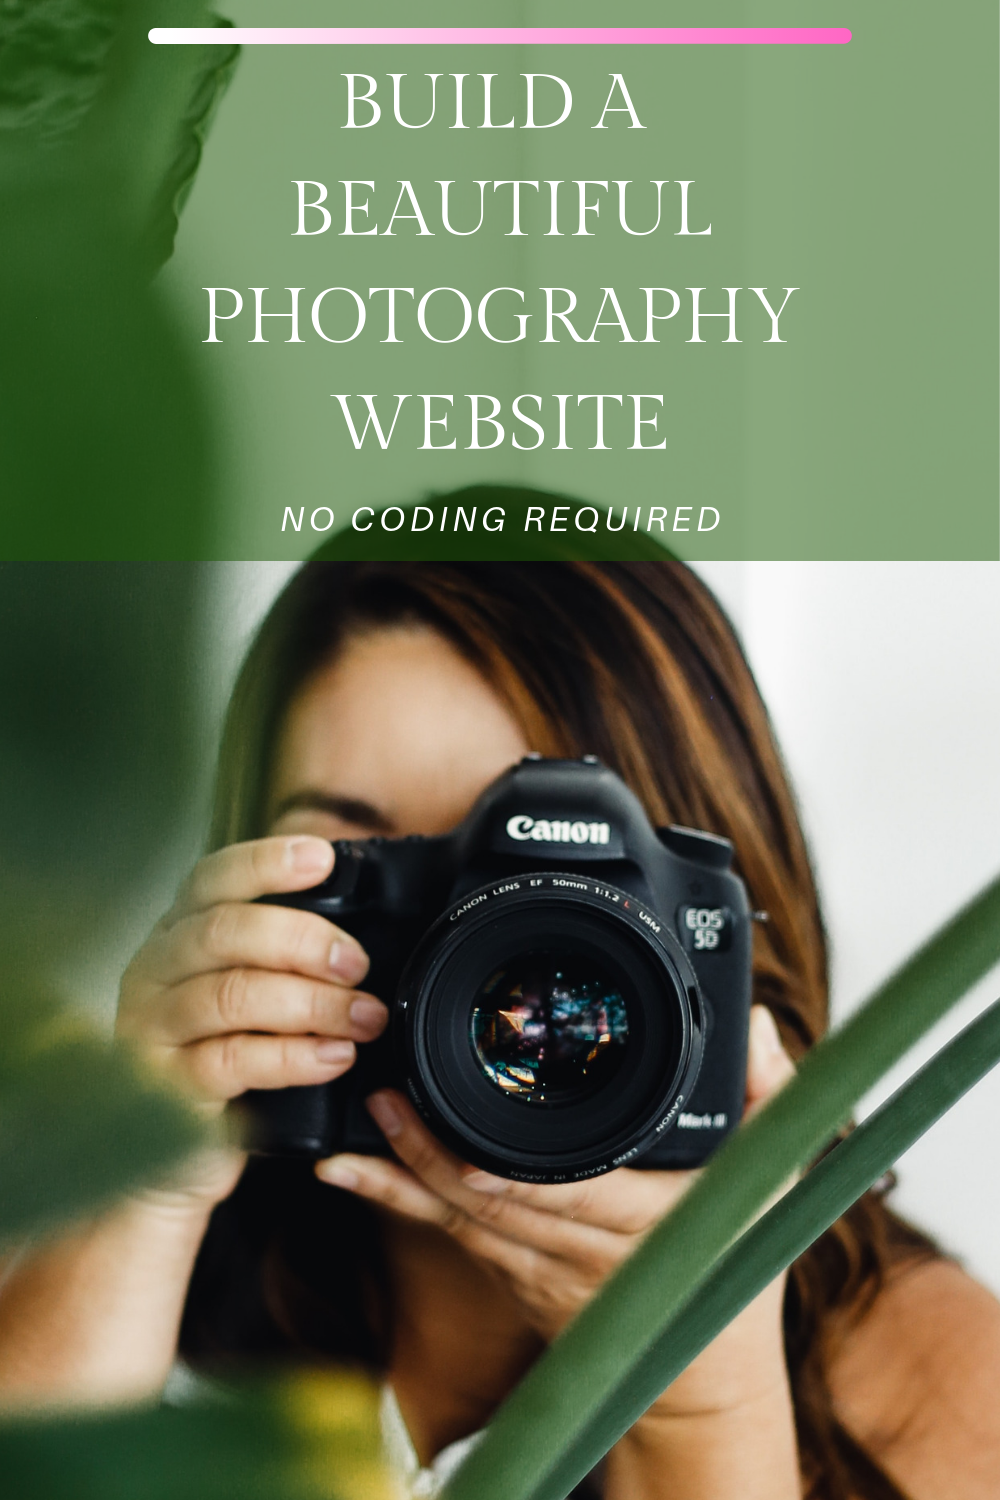 How To Start A Photography Business Photography Jobs Photography Lessons Photography Business